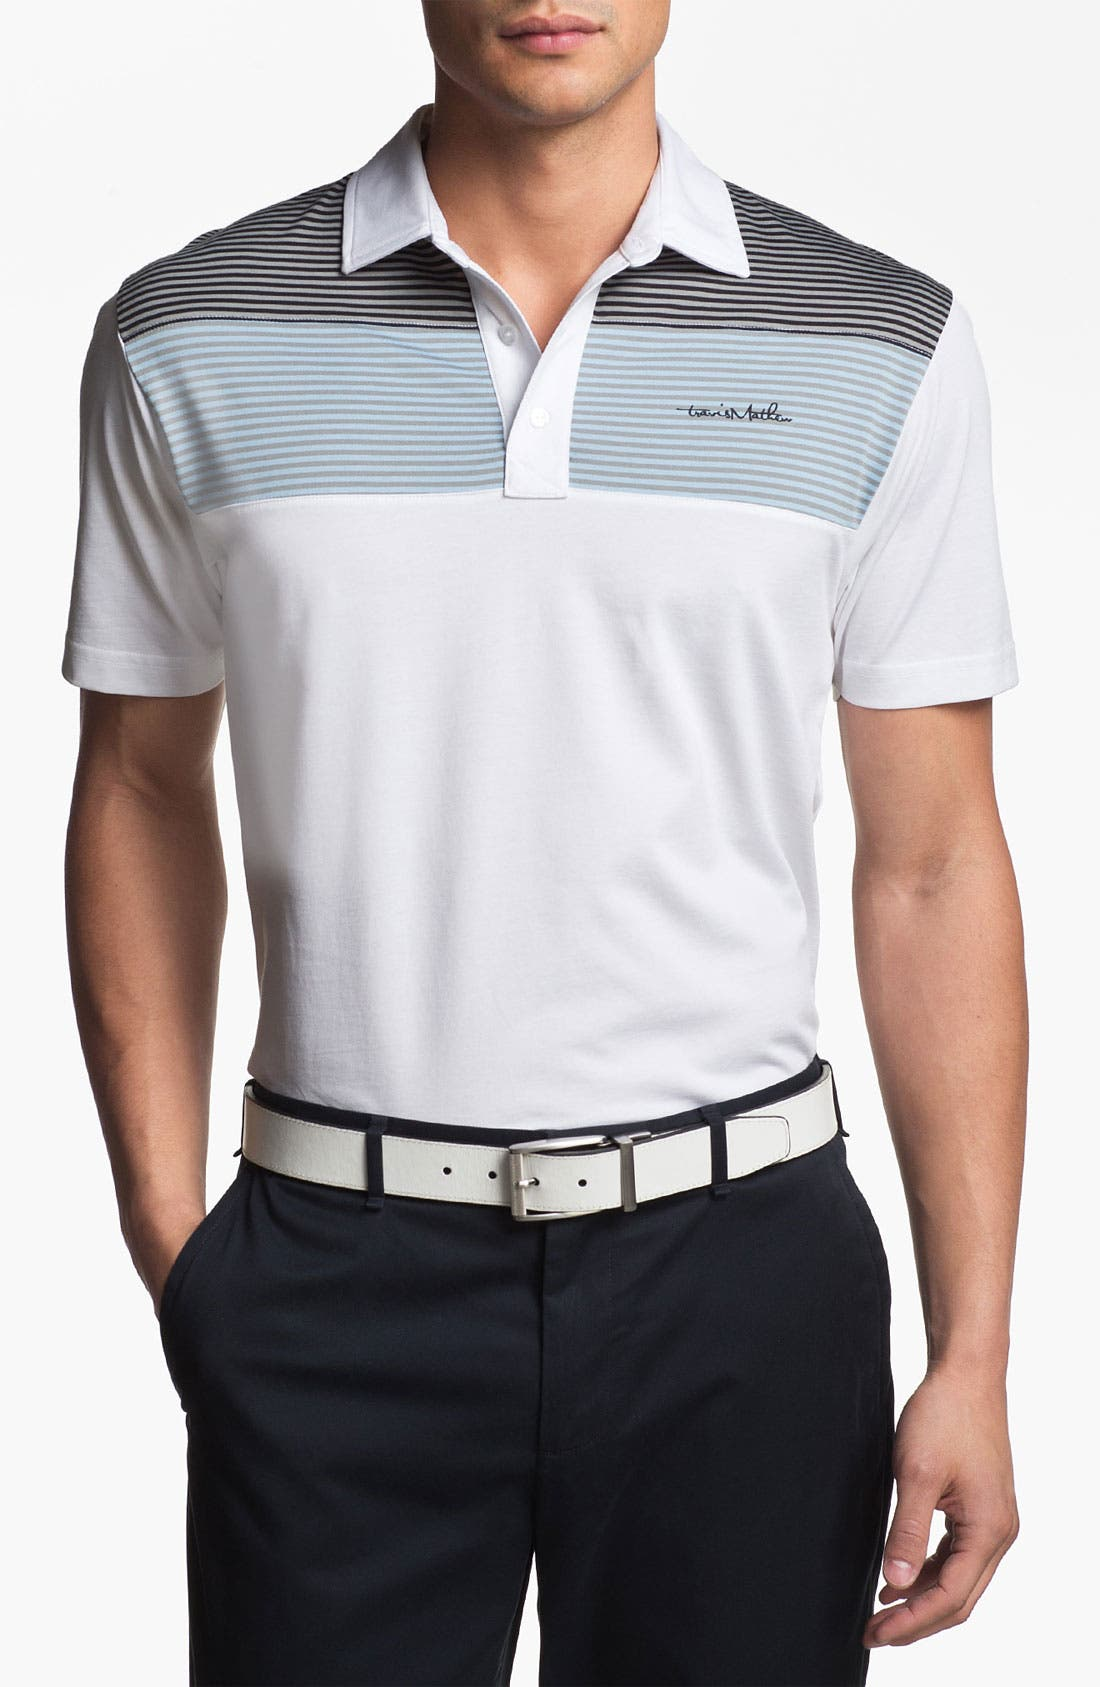 Alternate Image 1 Selected - Travis Mathew 'Mommasulo' Regular Fit Golf Polo